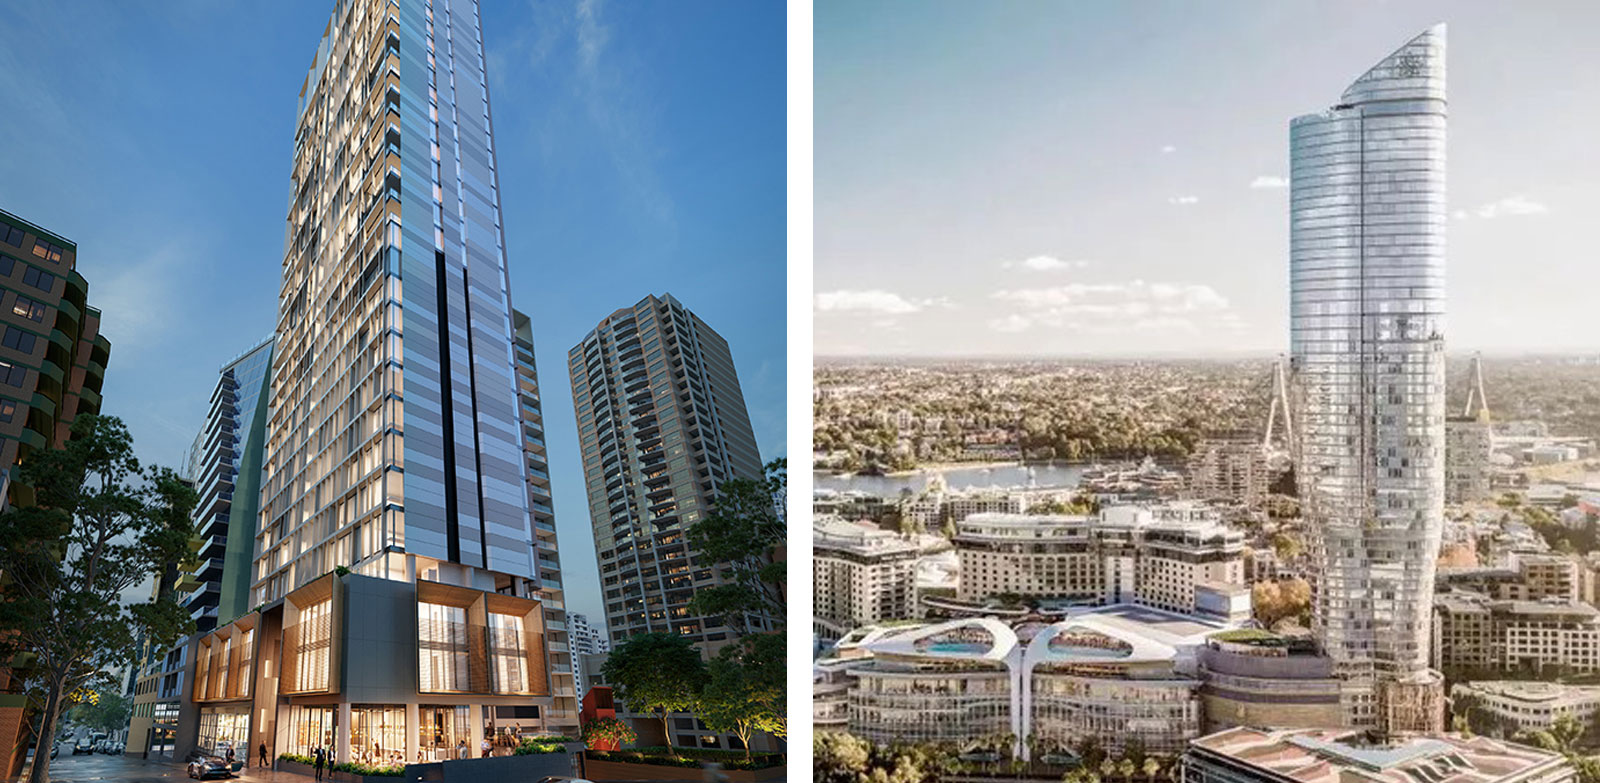 Rendering of the Fjmt-designed 9-25 Commonwealth Street (left) and the Ritz-Carlton, which is soon to come to market.